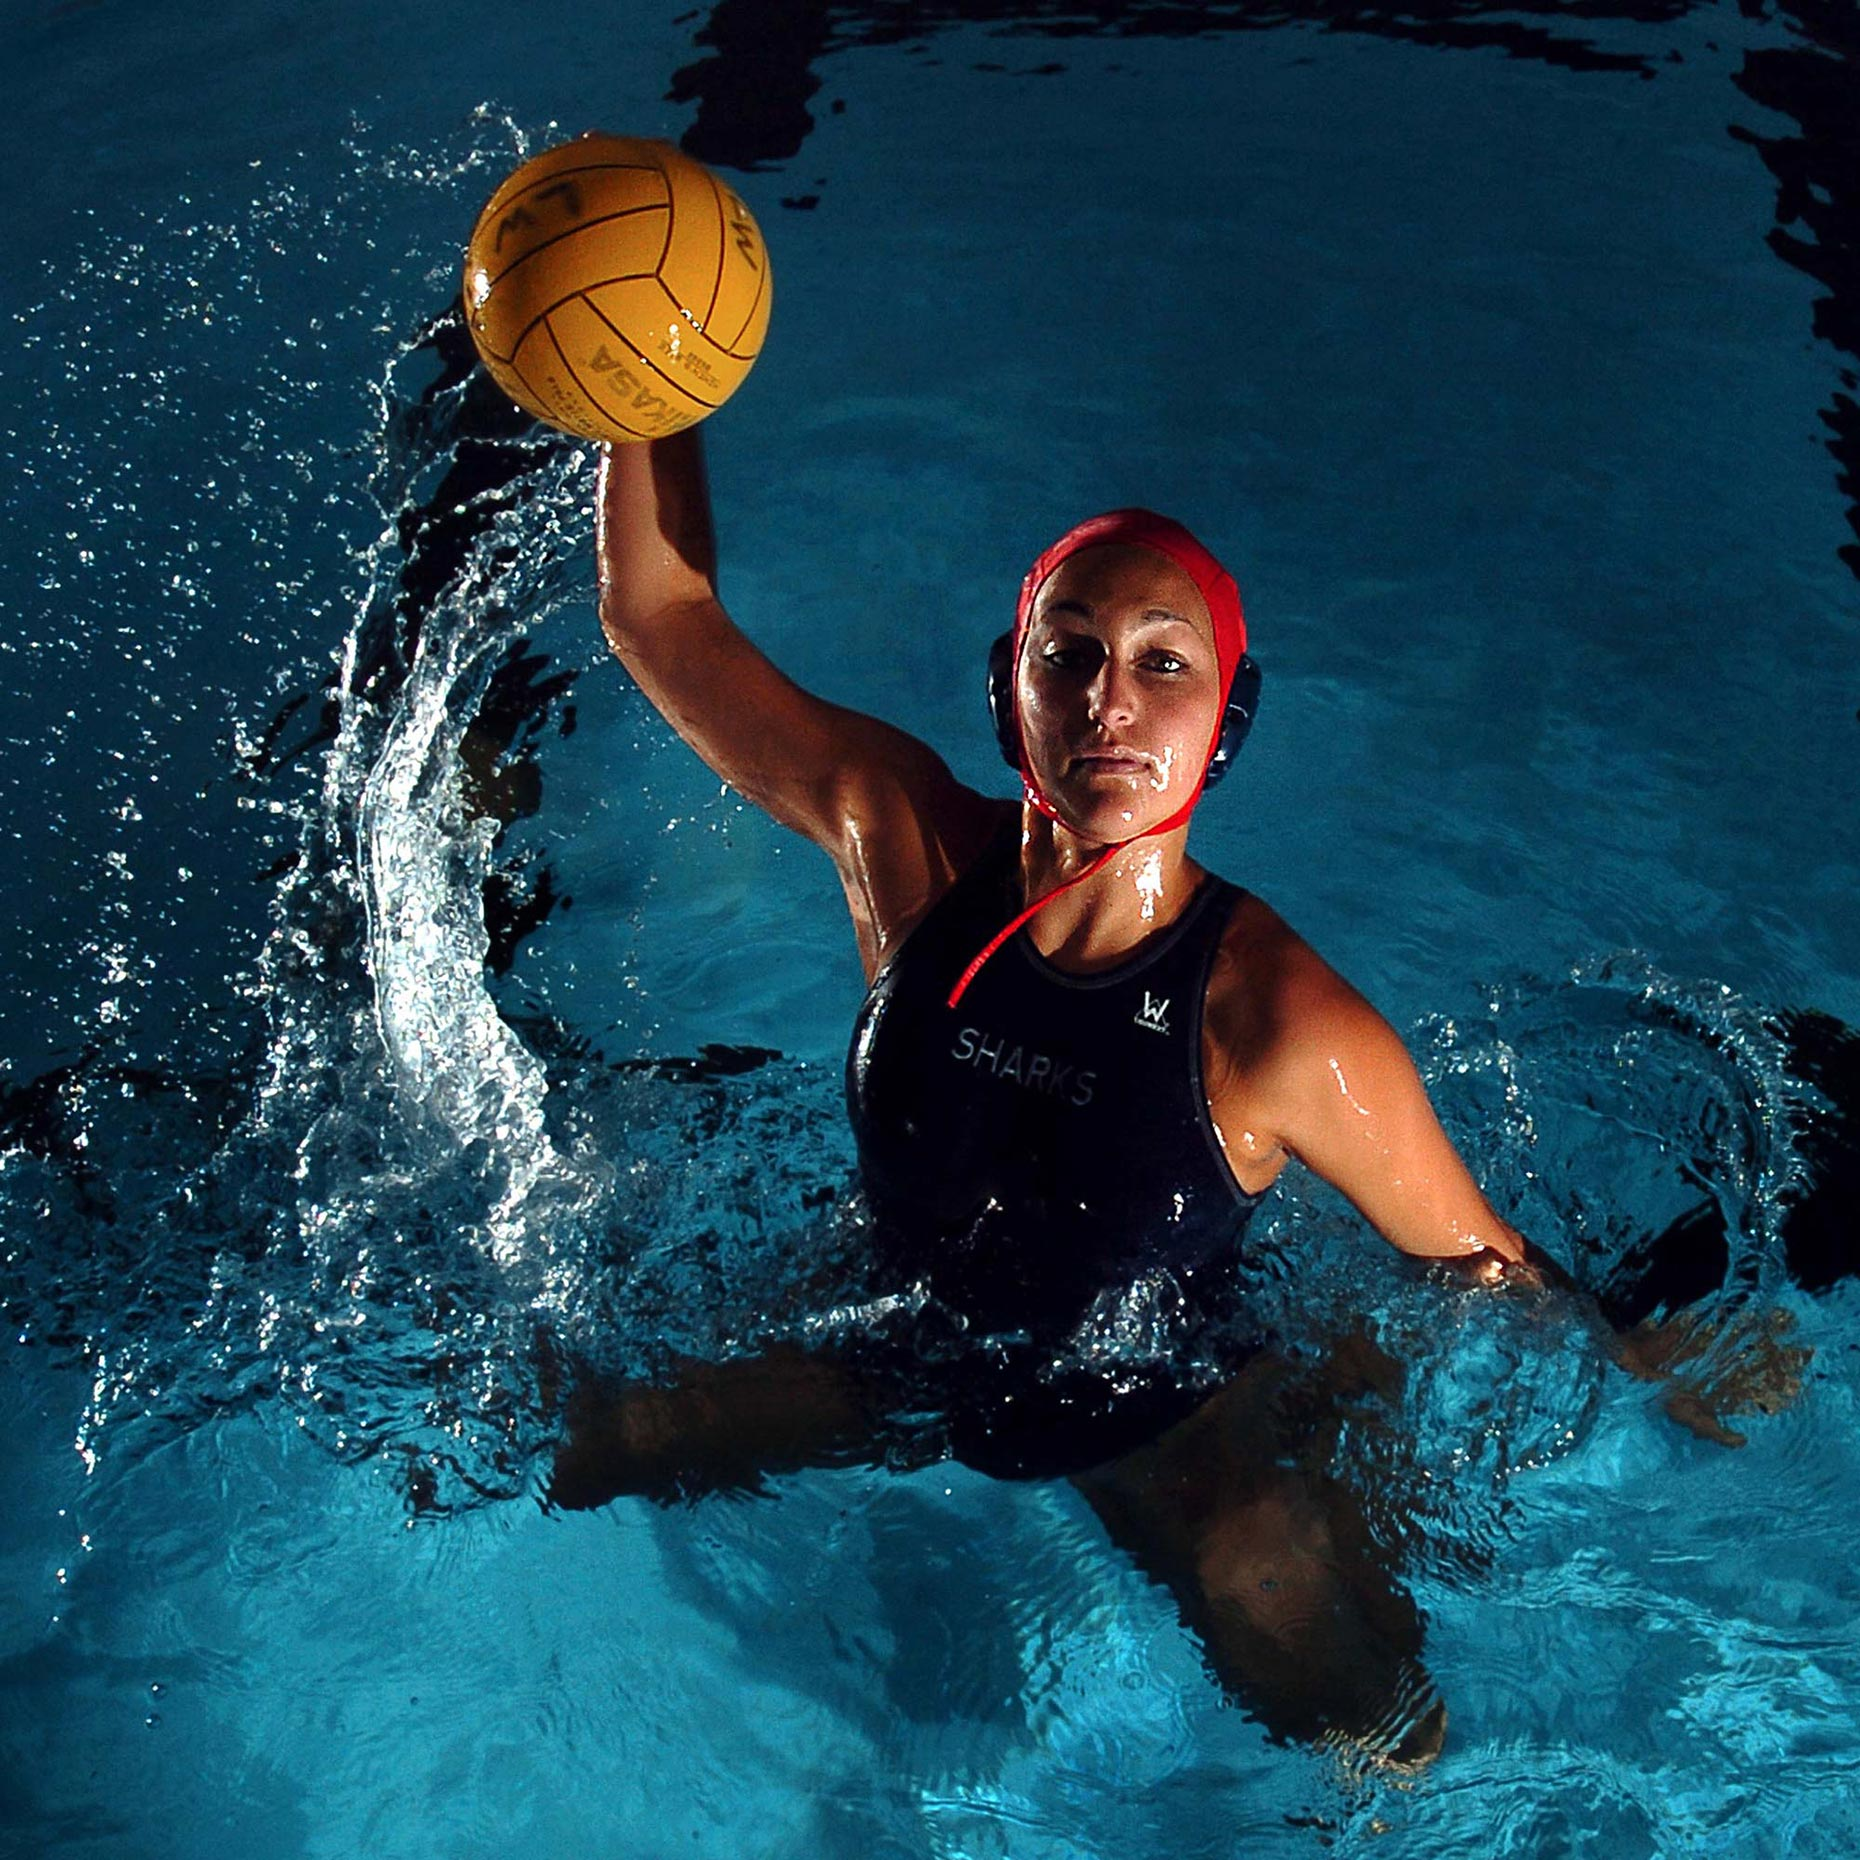 JOHNNY ANDREWS PHOTOGRAPHY :: PORTRAITURE :: Water Polo